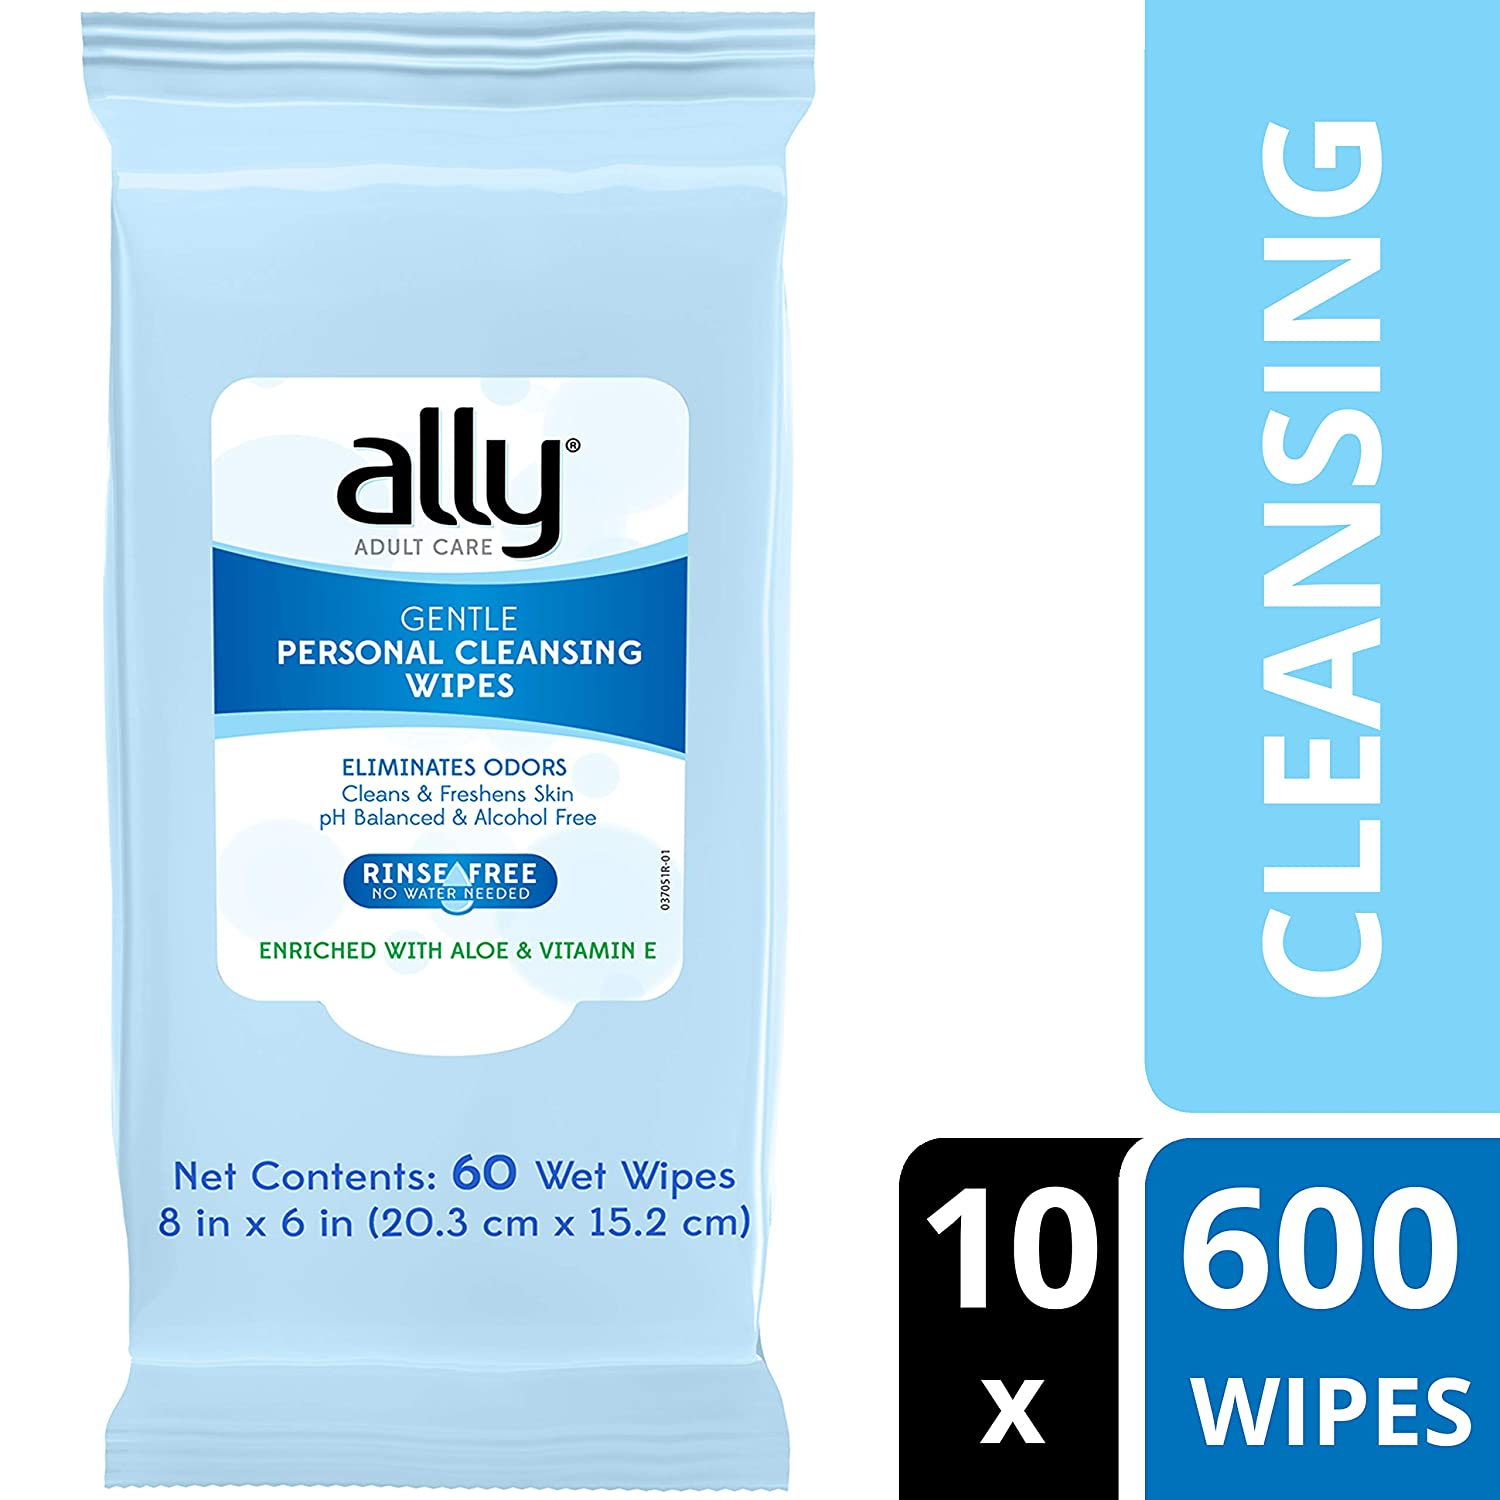 Ally Personal Cleansing Wipes, Rinse-Free with Aloe and Vitamin E, 600 Wipes (10 Packs of 60 Wipes)